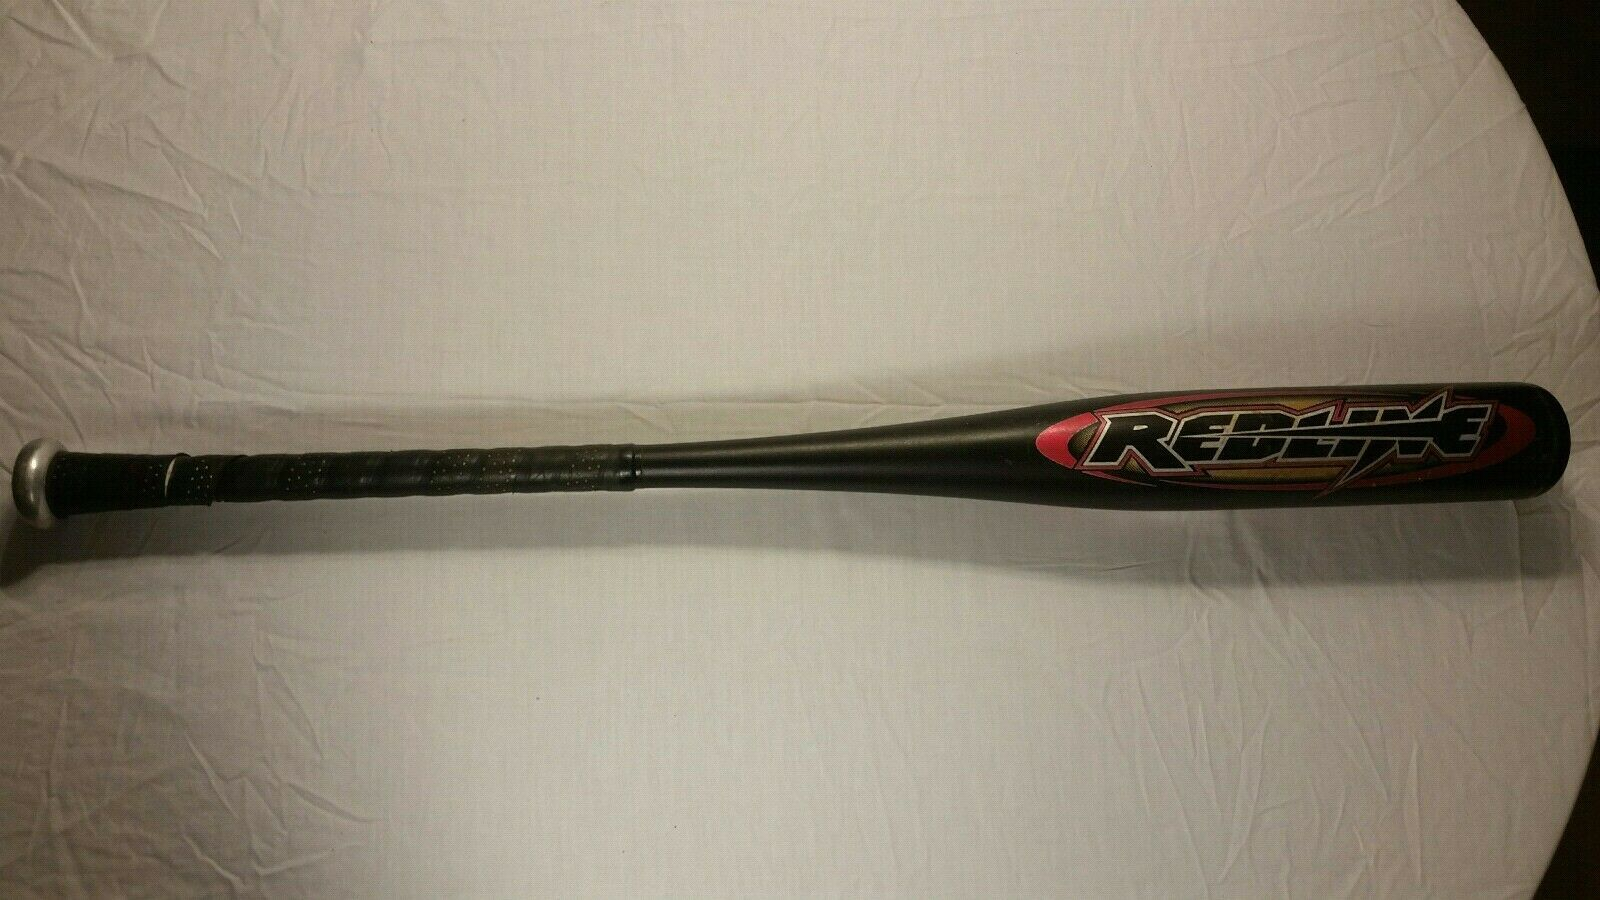 Easton Redline C500 BZ6 Baseball Bat 32 29 -3 BESR 2-5 8  MAX BARREL dia Z2K ERA